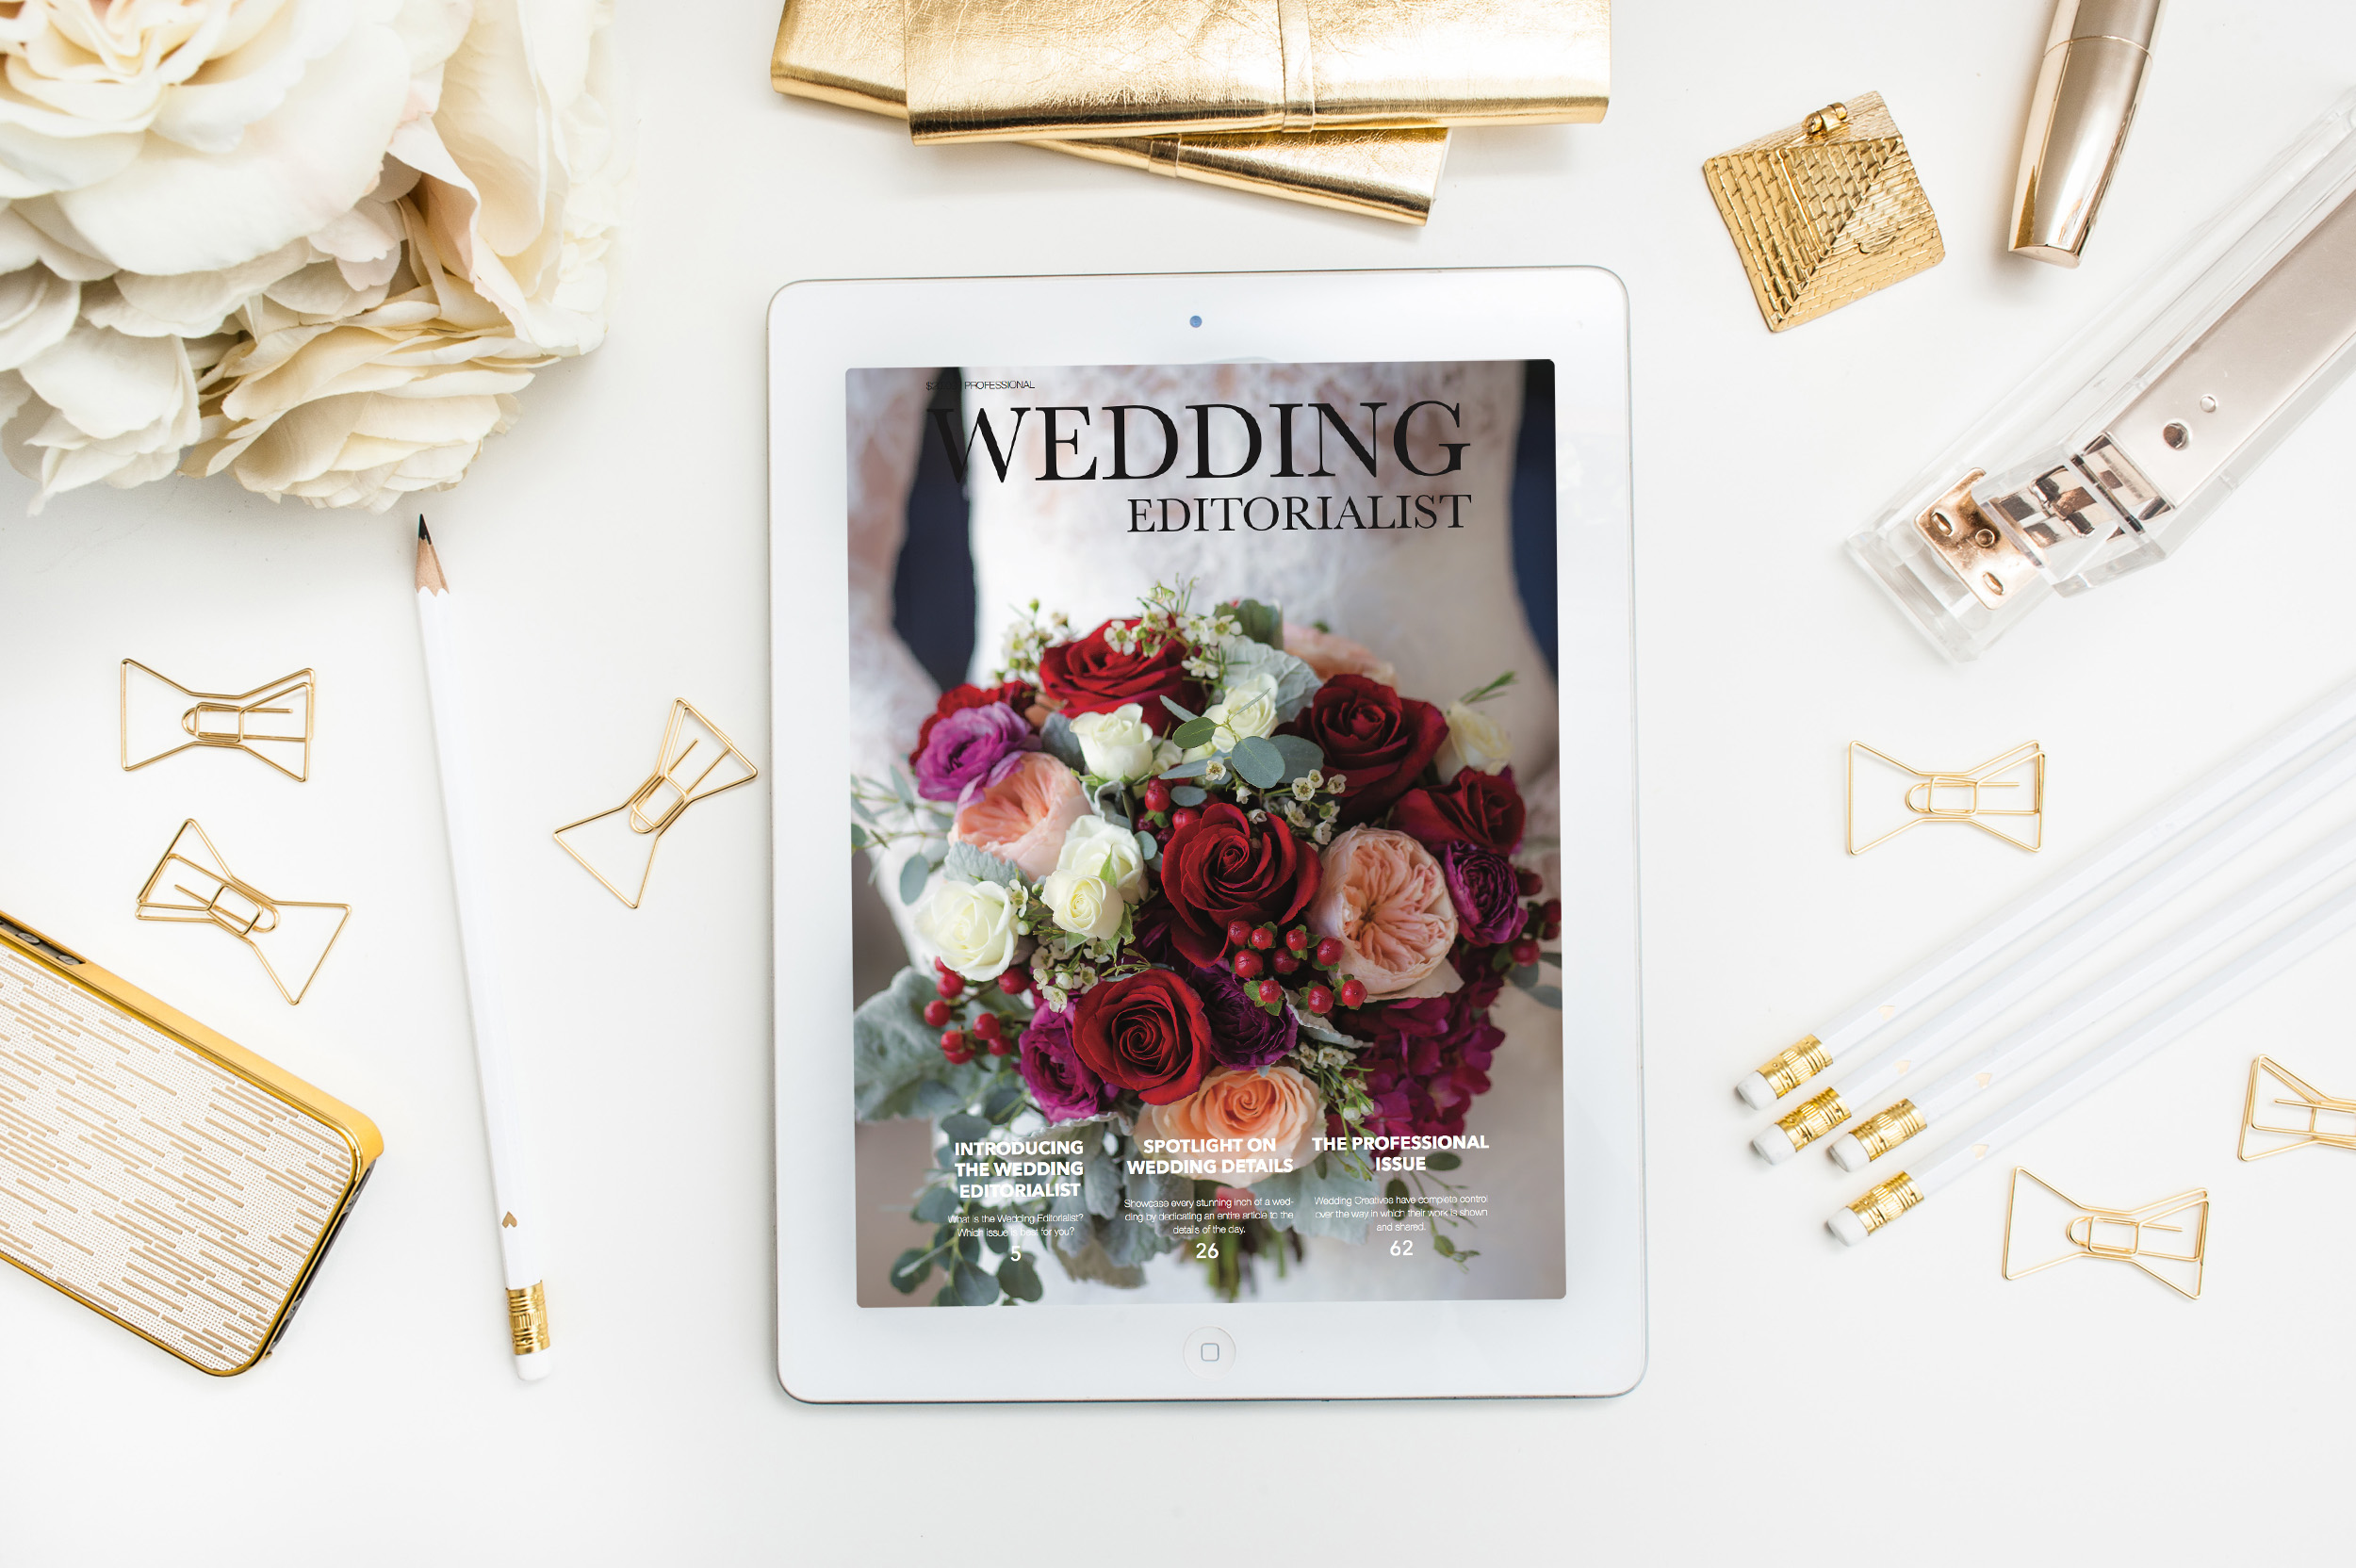 THE WEDDING EDITORIALIST:  The Wedding Editorialist is a self published wedding magazine that features one couple, wedding, or professional creative at a time. But what does that mean? How does it work? Can I see a sample? OF COURSE! This issue walks you through who we are at Wedding Editorialist, showcases the different magazines we create, and showcases sample articles. To Learn More,  CLICK HERE!